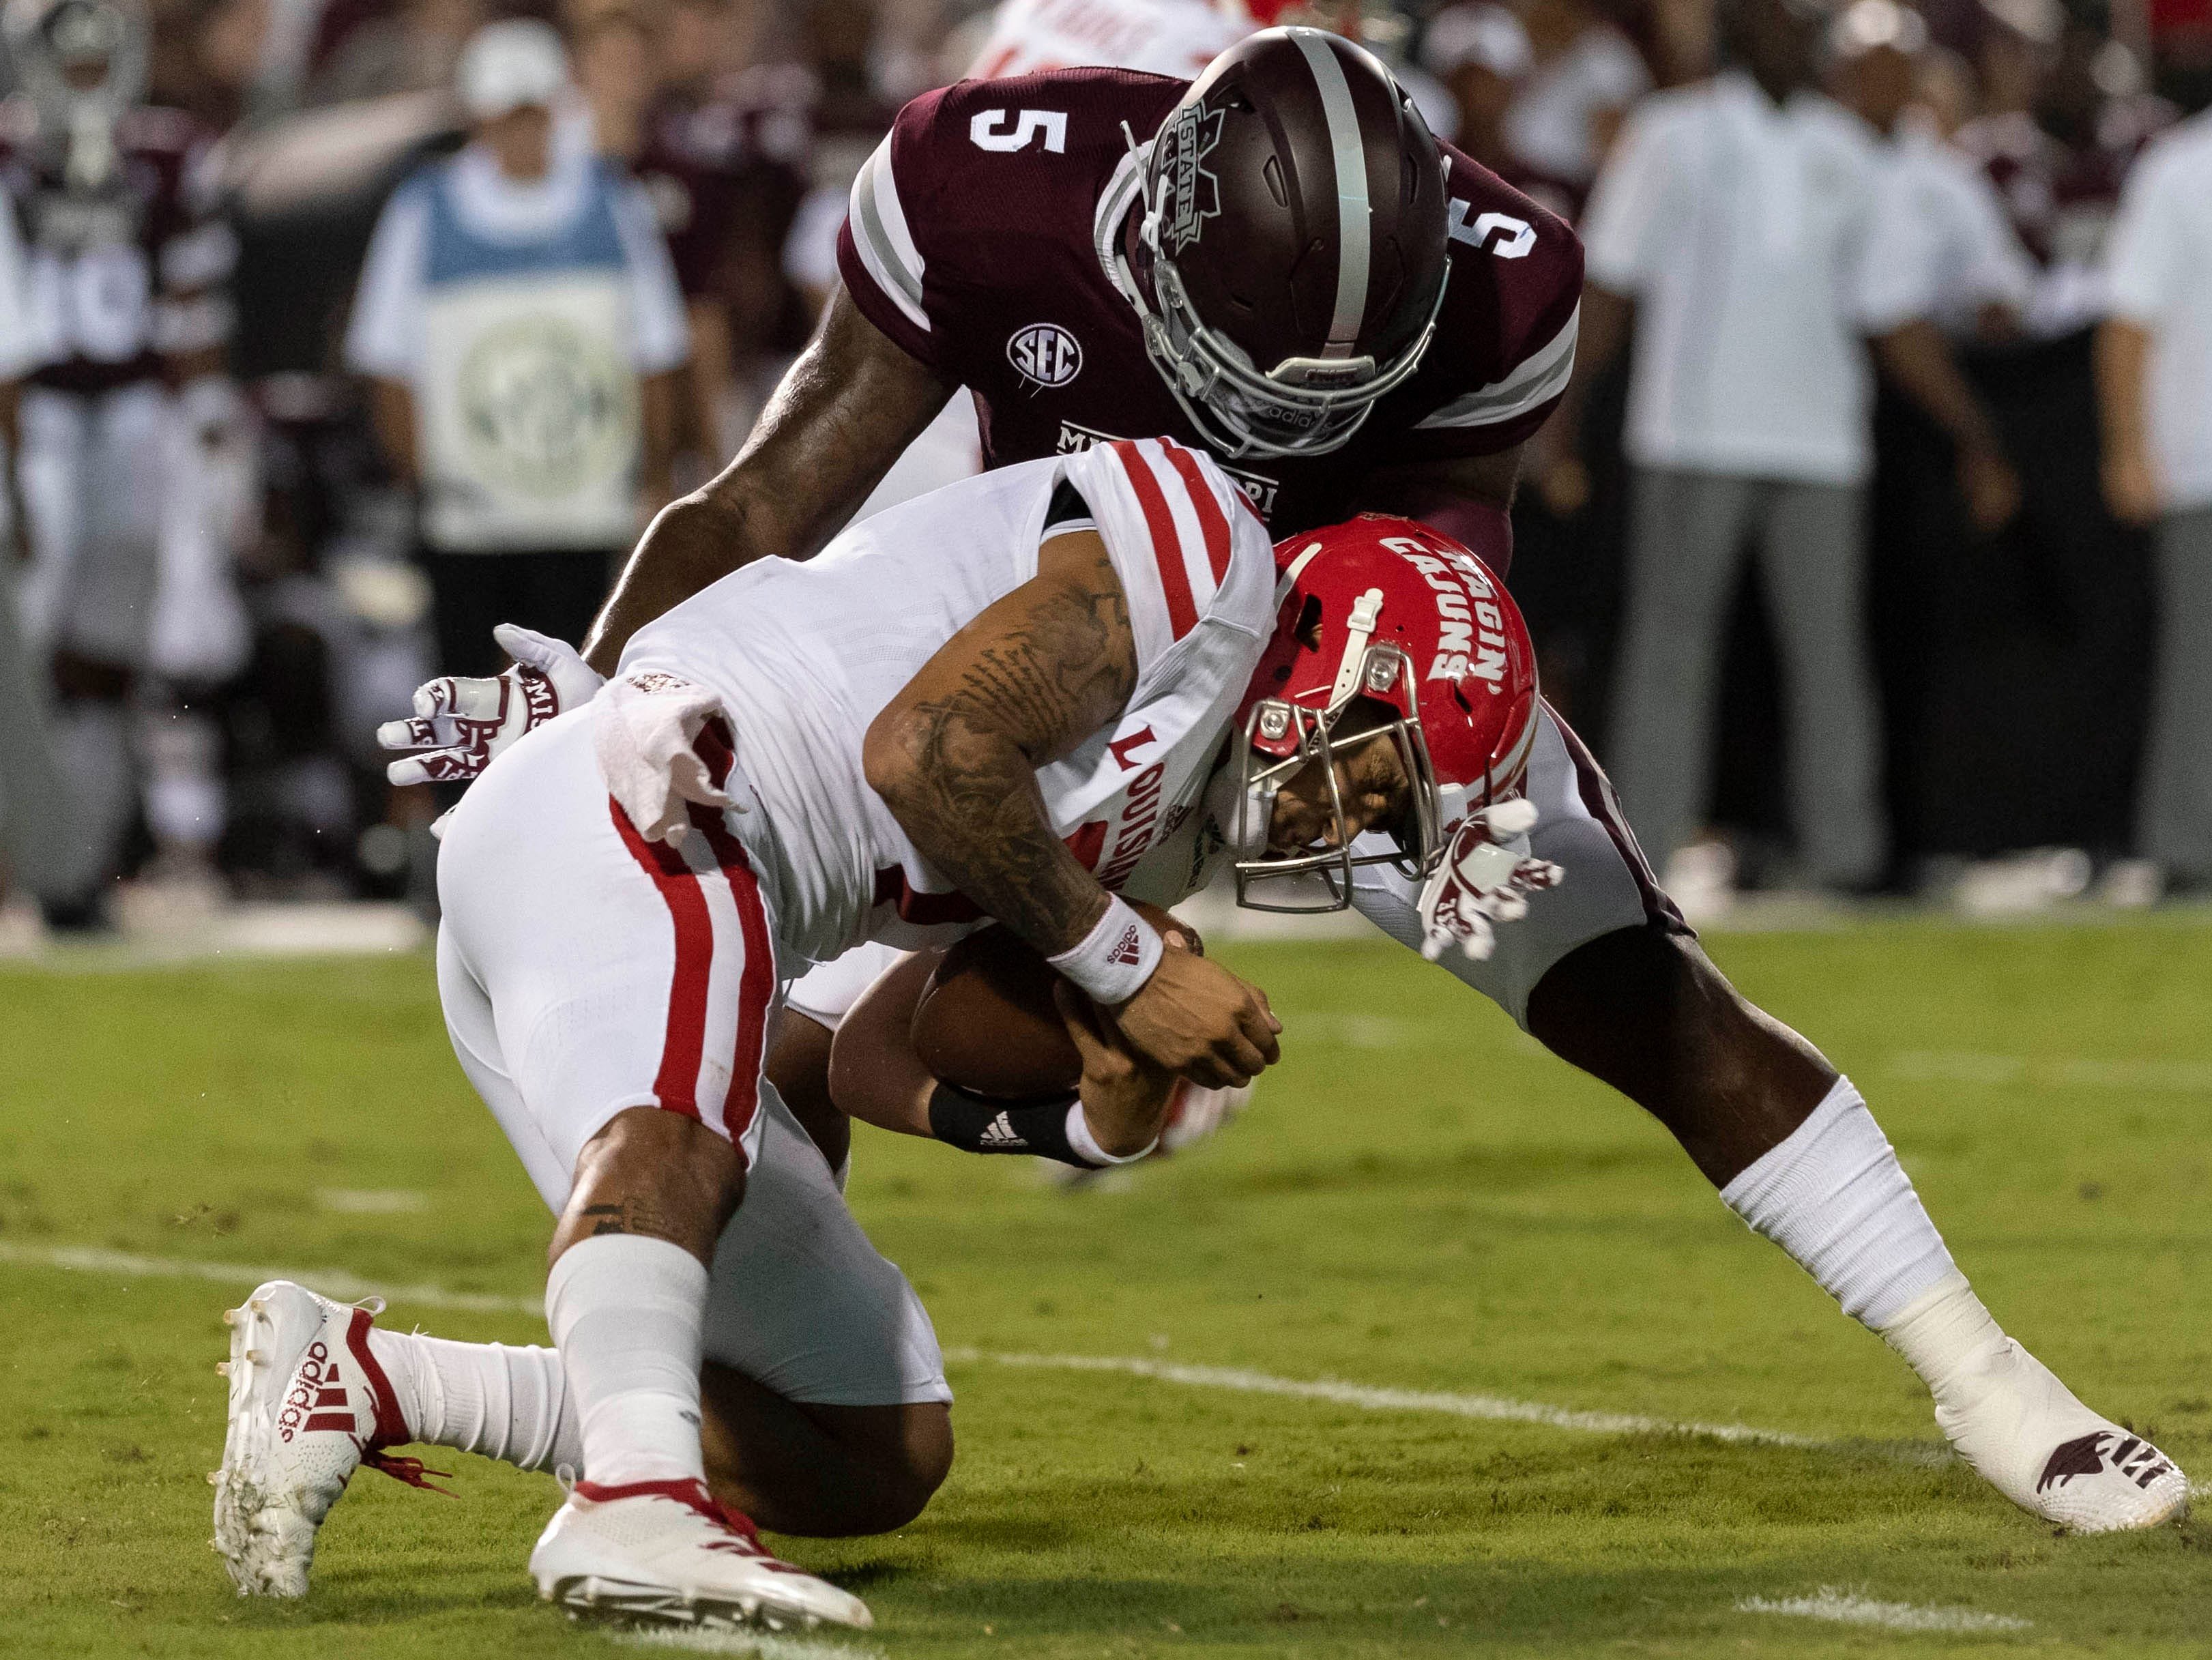 Mississippi State Bulldogs defensive lineman Chauncey Rivers (5) tackles UL Lafayette Ragin' Cajuns quarterback Andre Nunez (7) during the first half at Davis Wade Stadium.